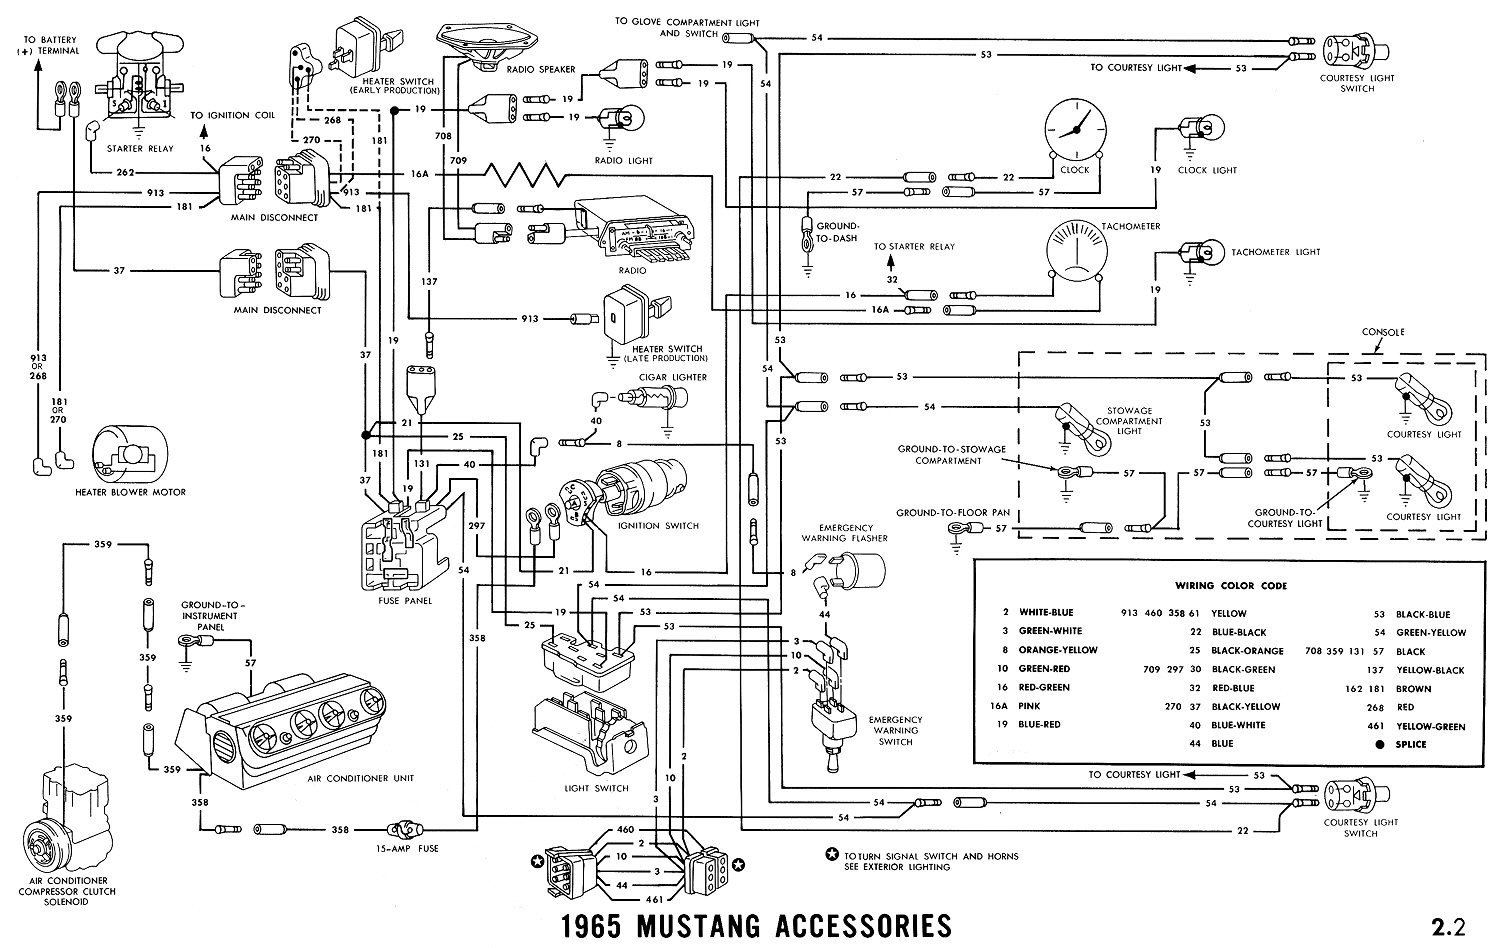 Mustang Column Wiring Diagram together with Nova 250 Engine Diagram additionally 68 Mustang Turn Signal Wiring Diagram additionally 2008 Rhino 700 Wiring Diagram Schematic in addition Showthread. on 65 mustang ignition switch wiring diagram